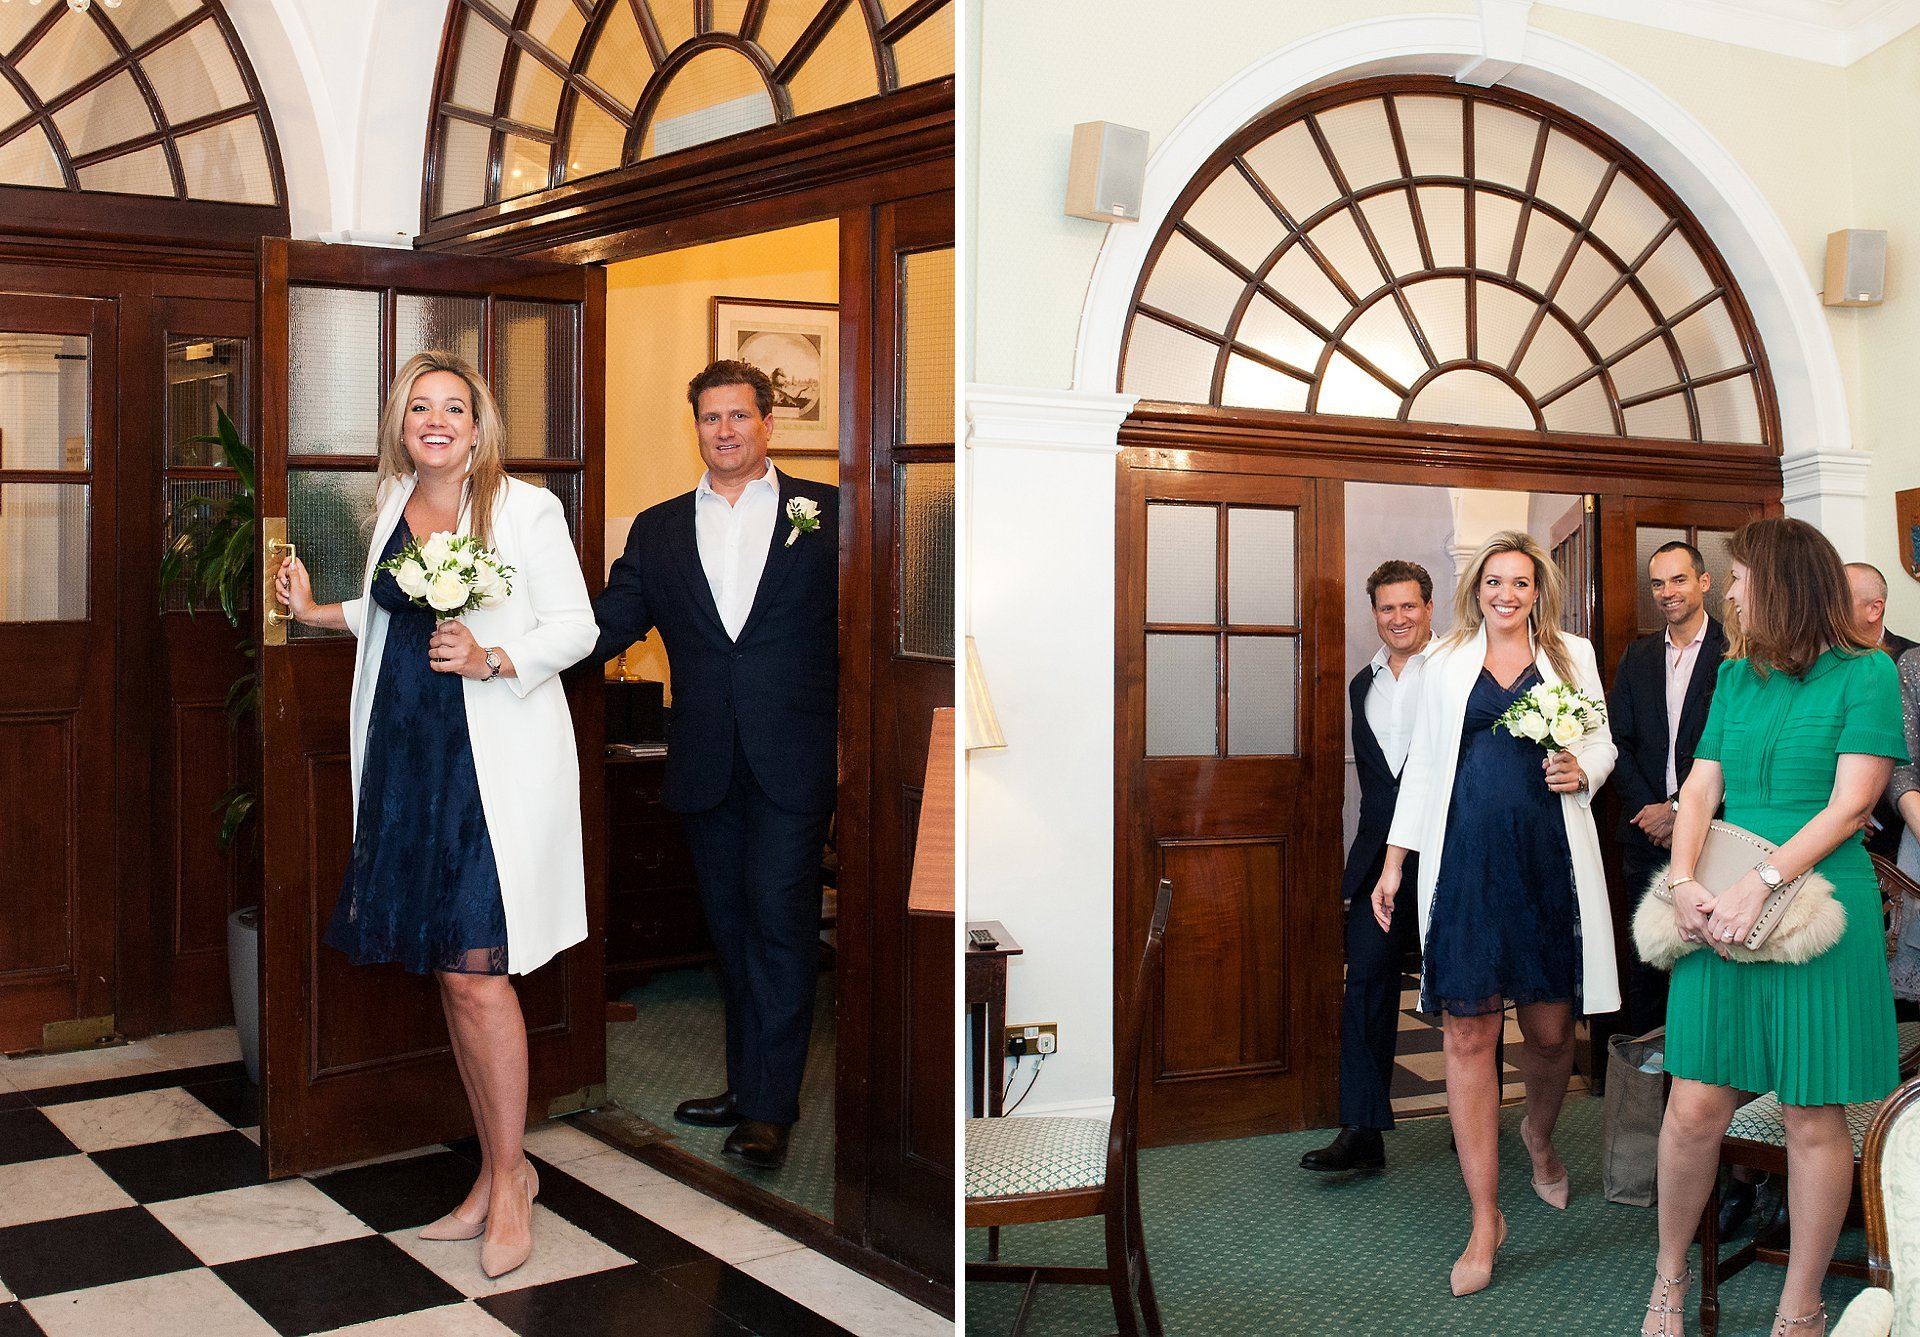 Emily and Julian enter the Rossetti Room inside Chelsea Old Town Hall for their civil marriage ceremony